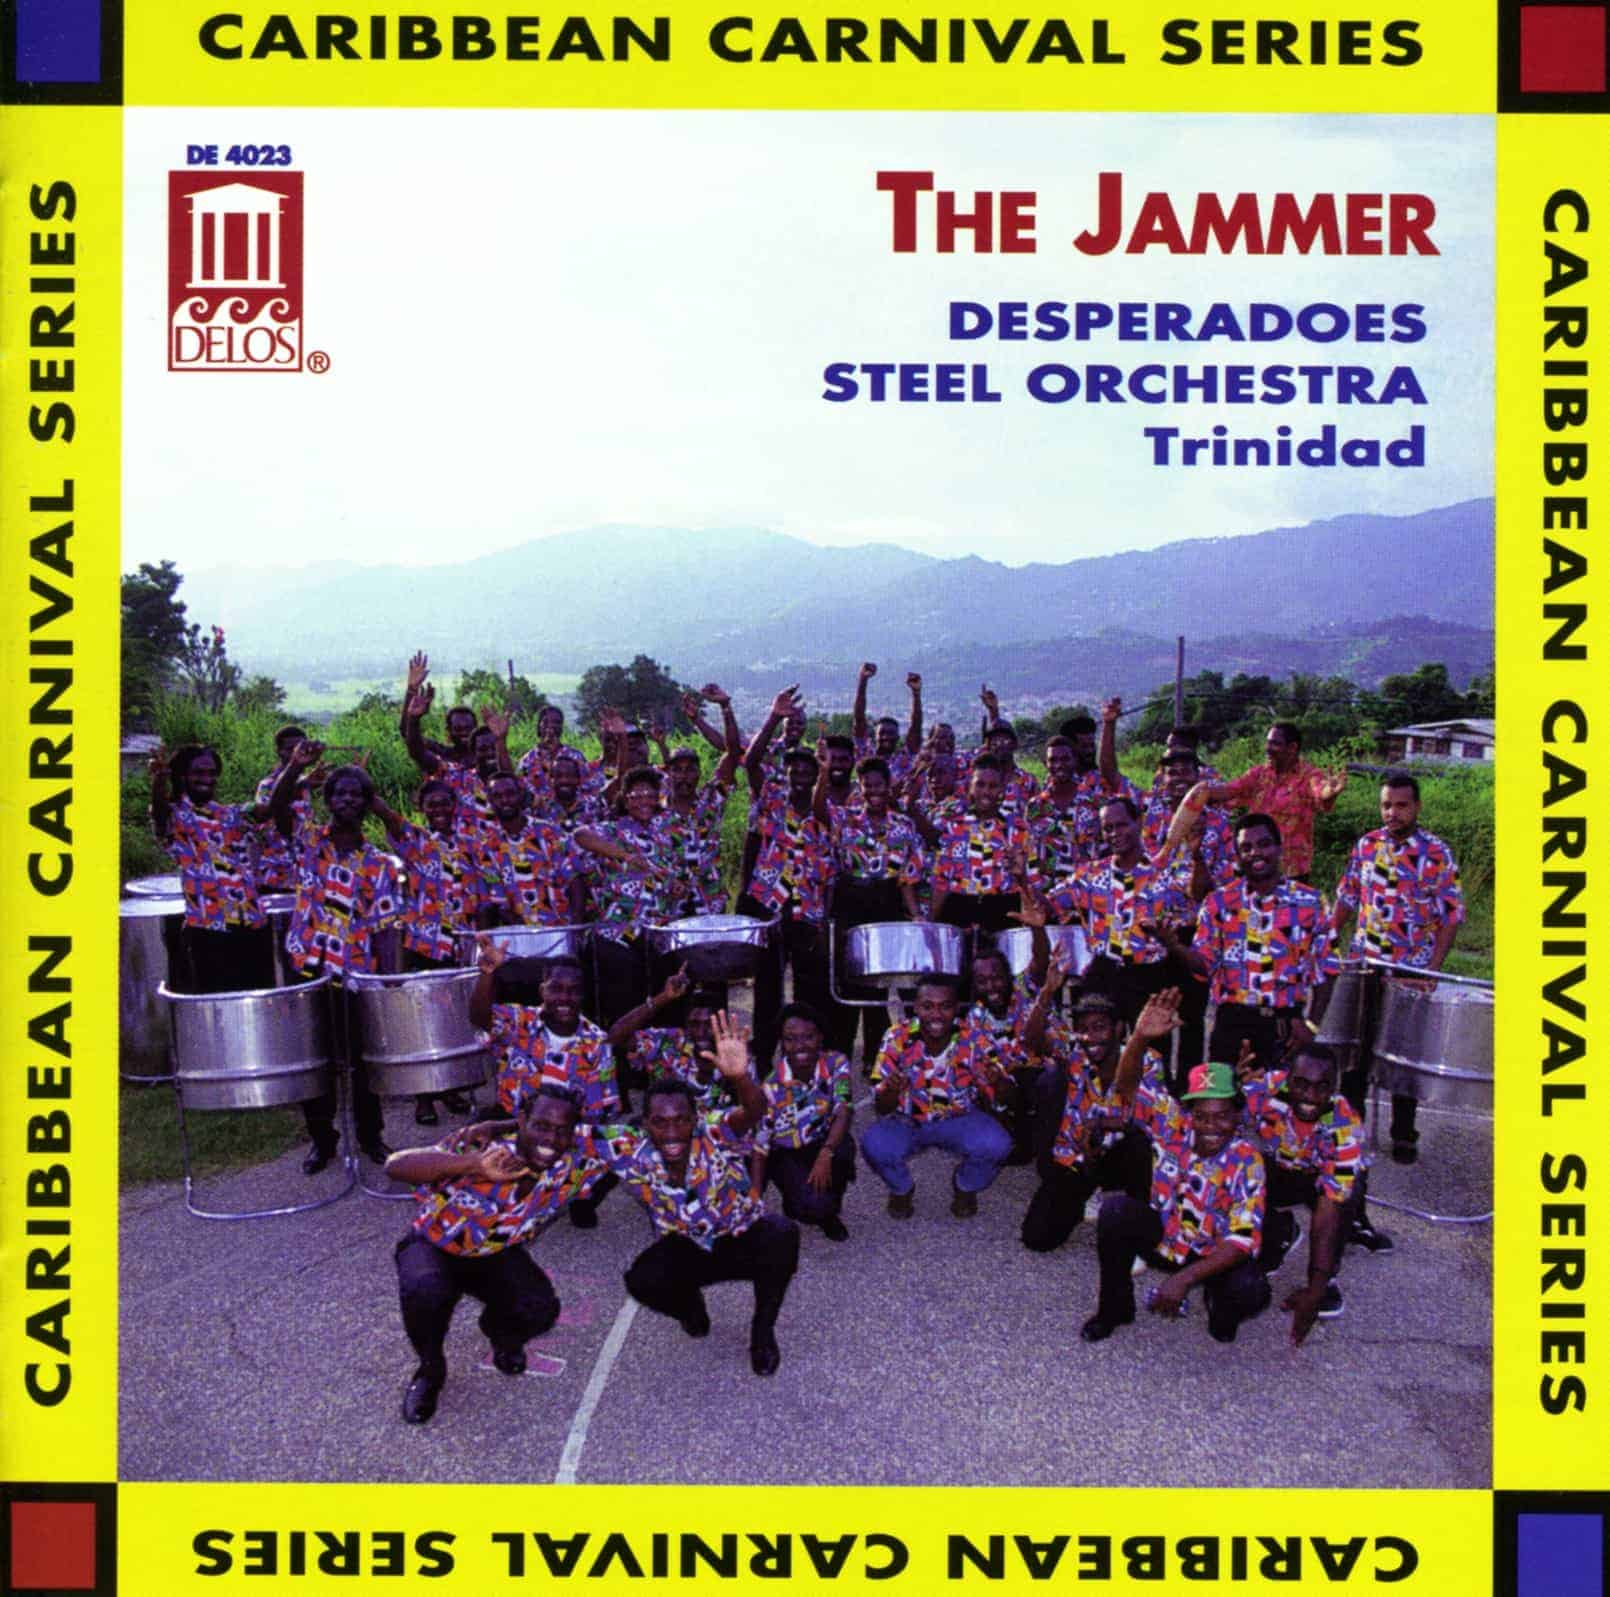 The Jammer - Desperadoes Steel Orchestra, Trinidad